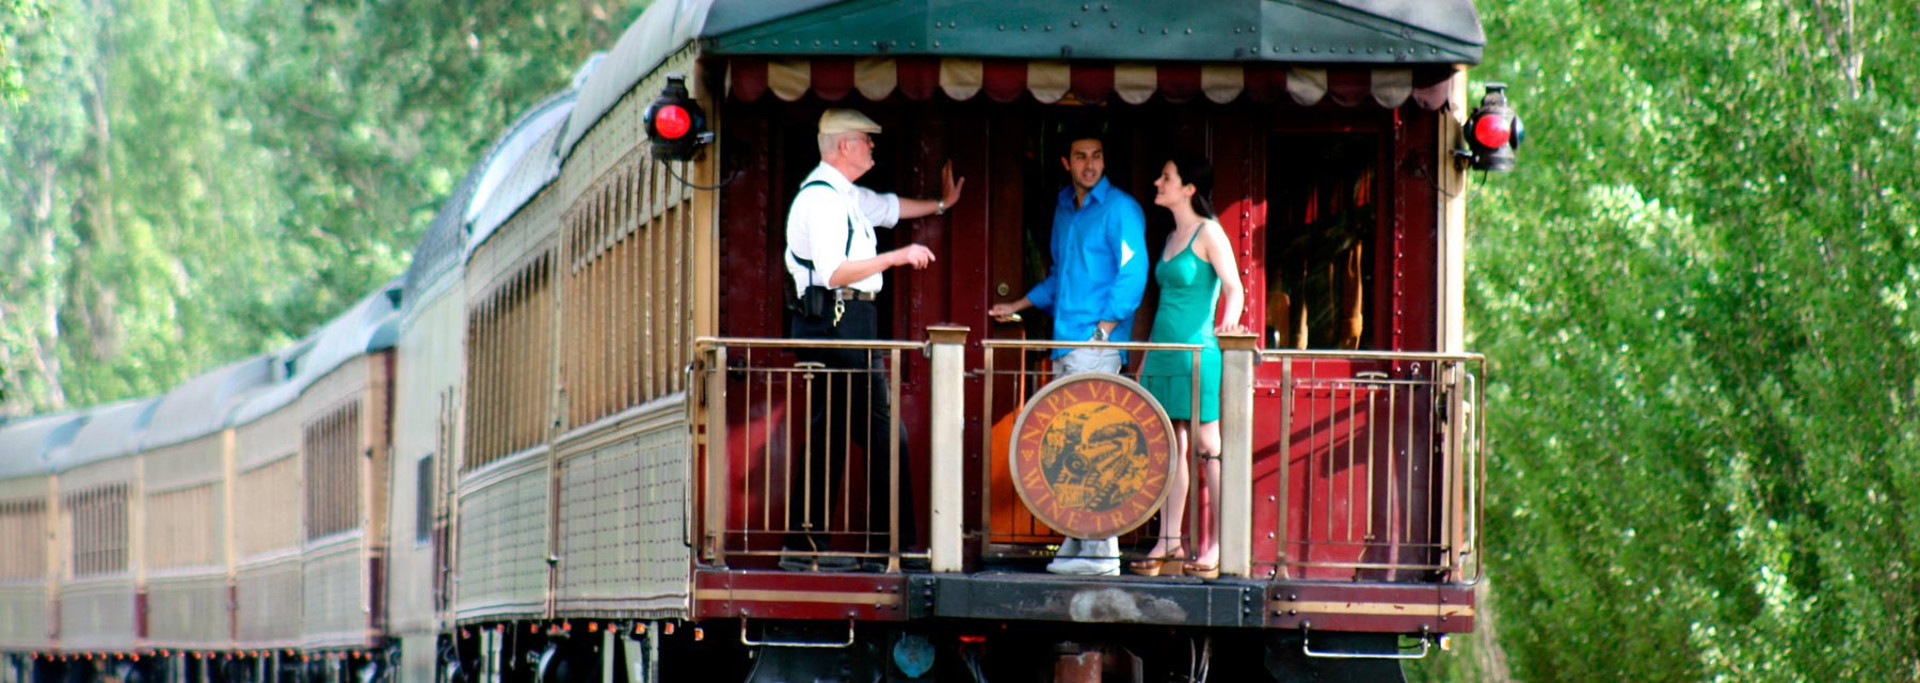 man and woman listening to conductor speak standing on back deck of Napa Valley Wine Train